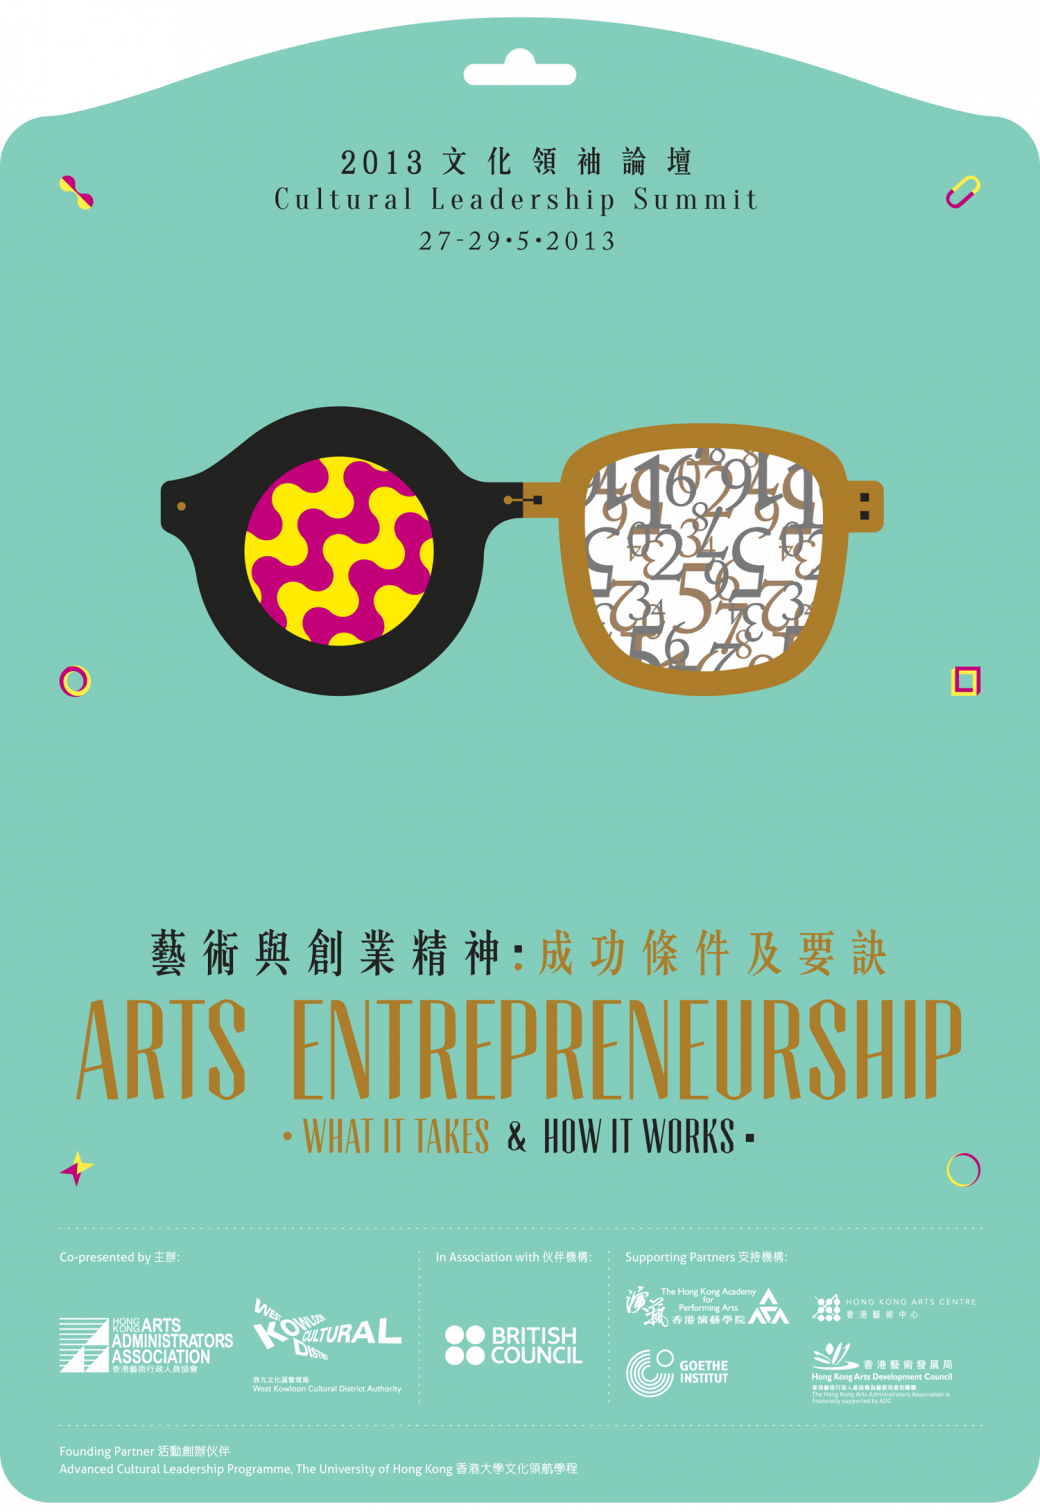 2013 Cultural Leadership Summit – Arts Entrepreneurship: What It Takes And How It Works